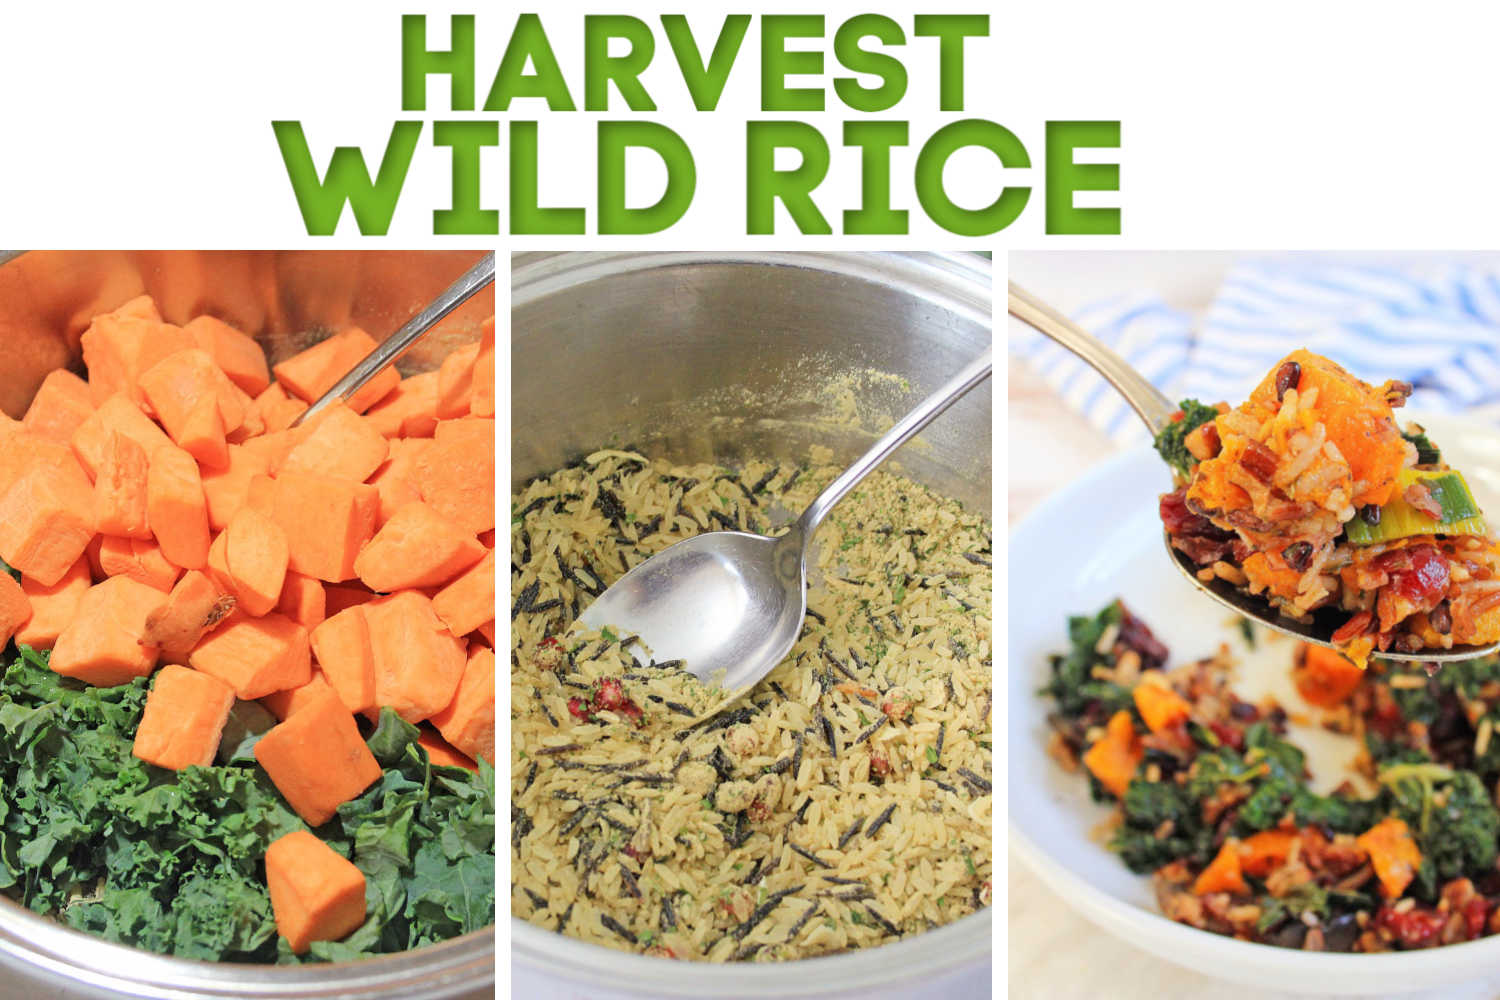 compilation image of three process shots showing how the harvest wild rice recipe is made